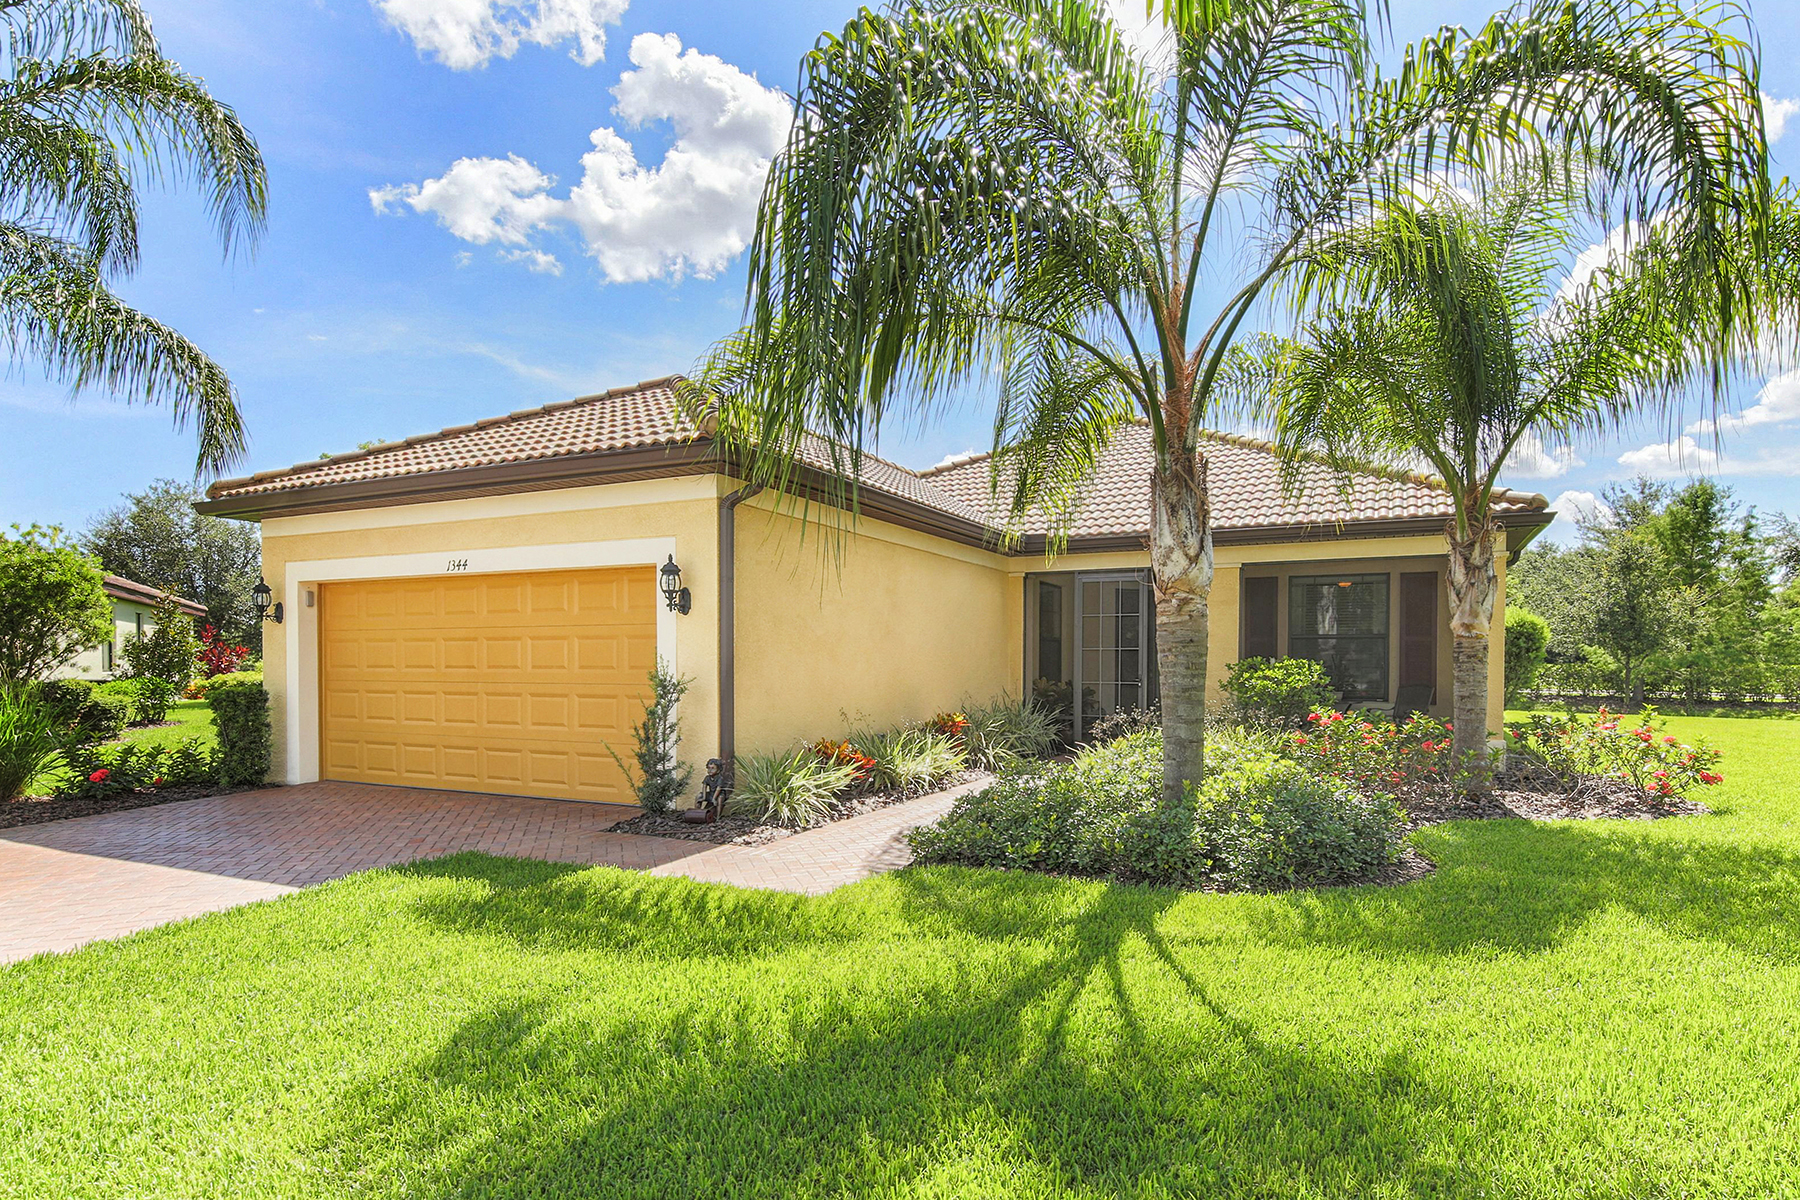 Single Family Home for Sale at CYPRESS FALLS 1344 Kelp Ct North Port, Florida, 34289 United States